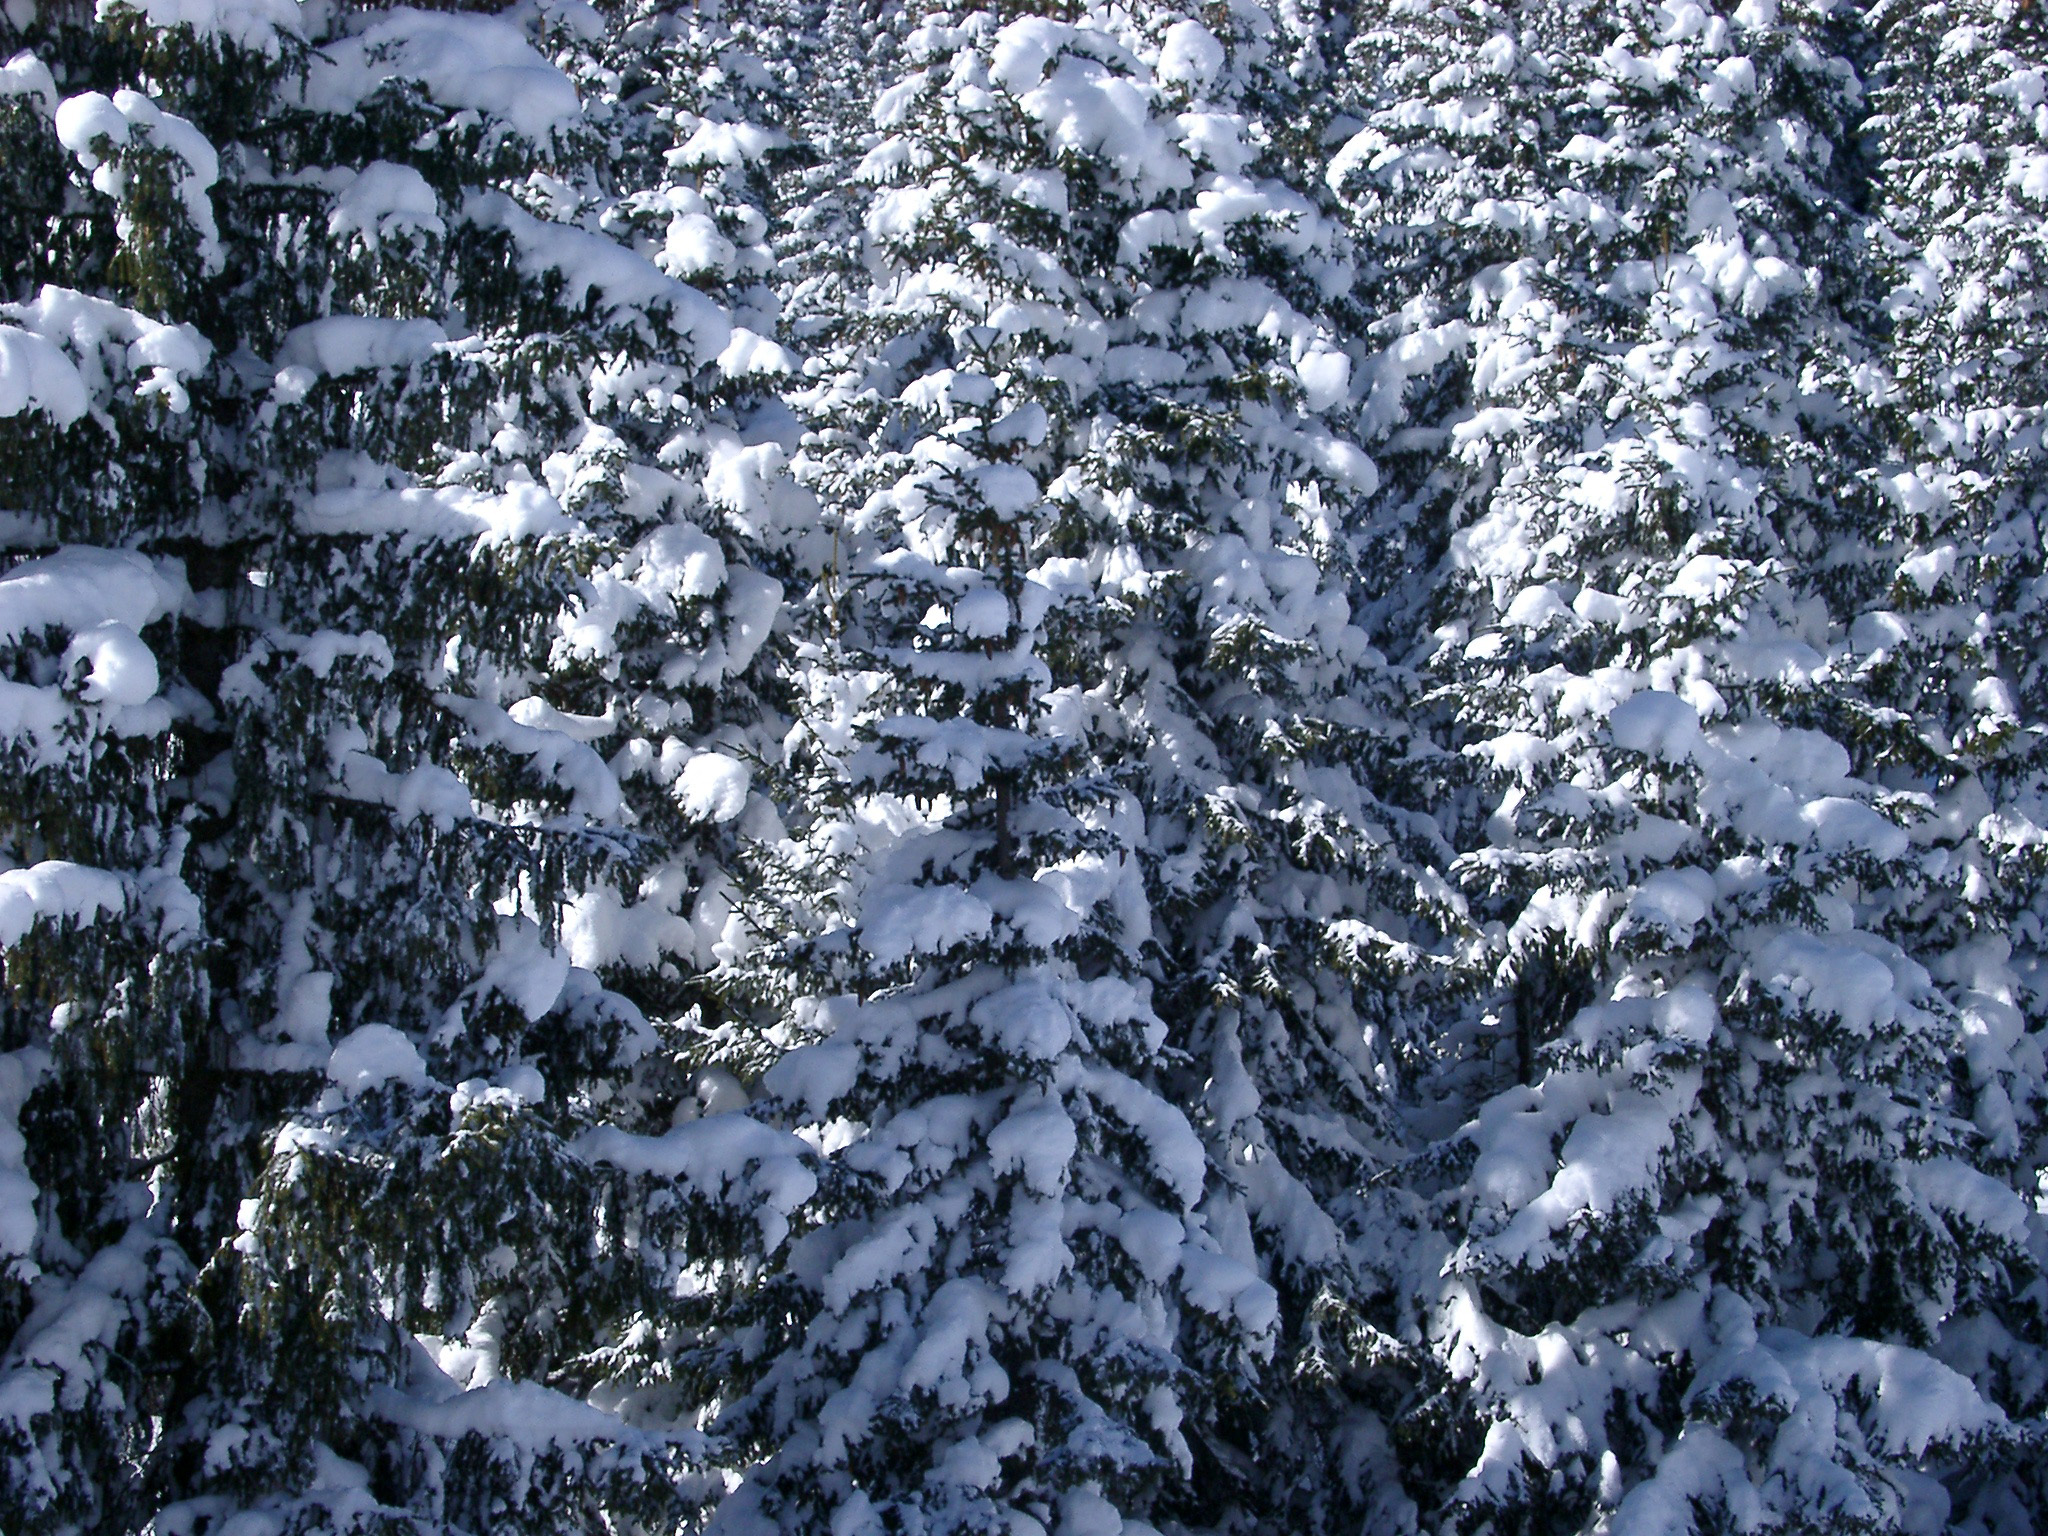 Free stock photo of trees covered with snow photoeverywhere - Images of pine trees in snow ...